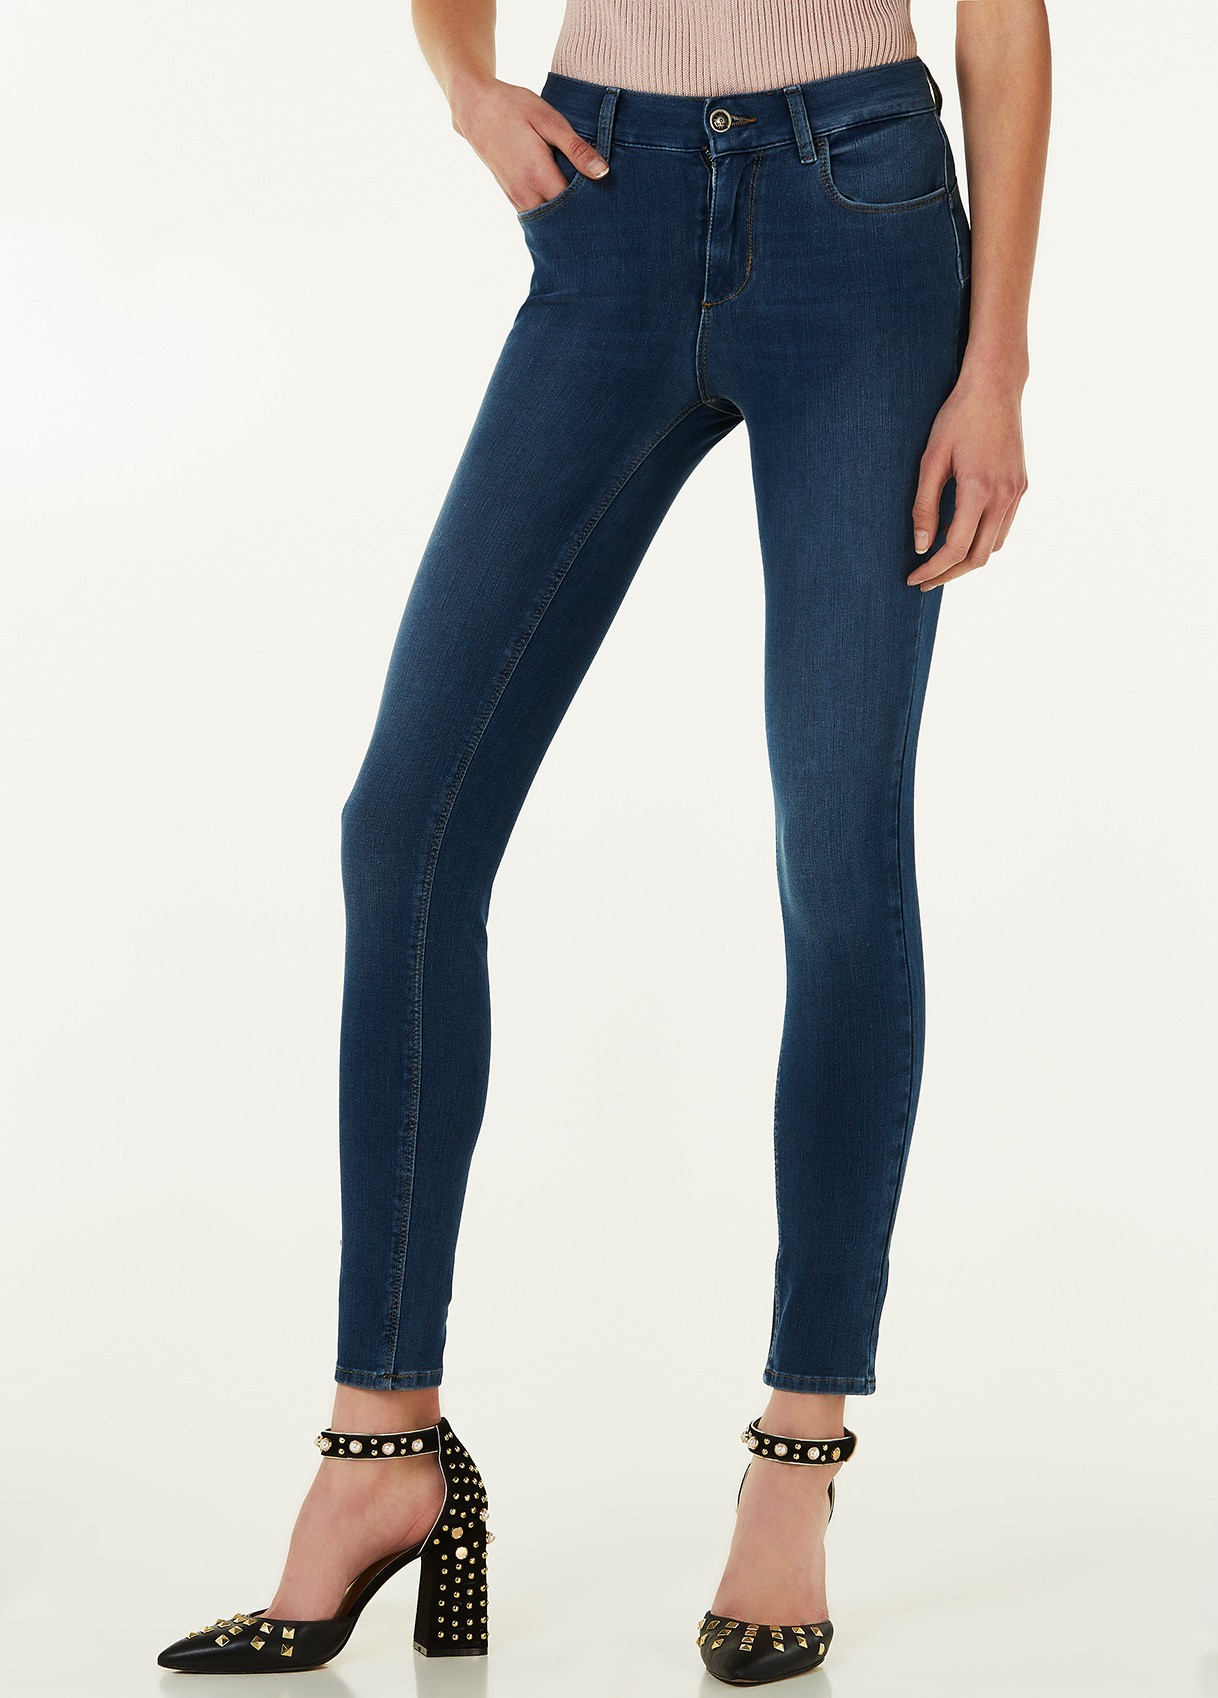 LIU JO JEANS DIVINE VITA ALTA AMAZING FIT ISKO DENIM BLUE ZIPPER WASH